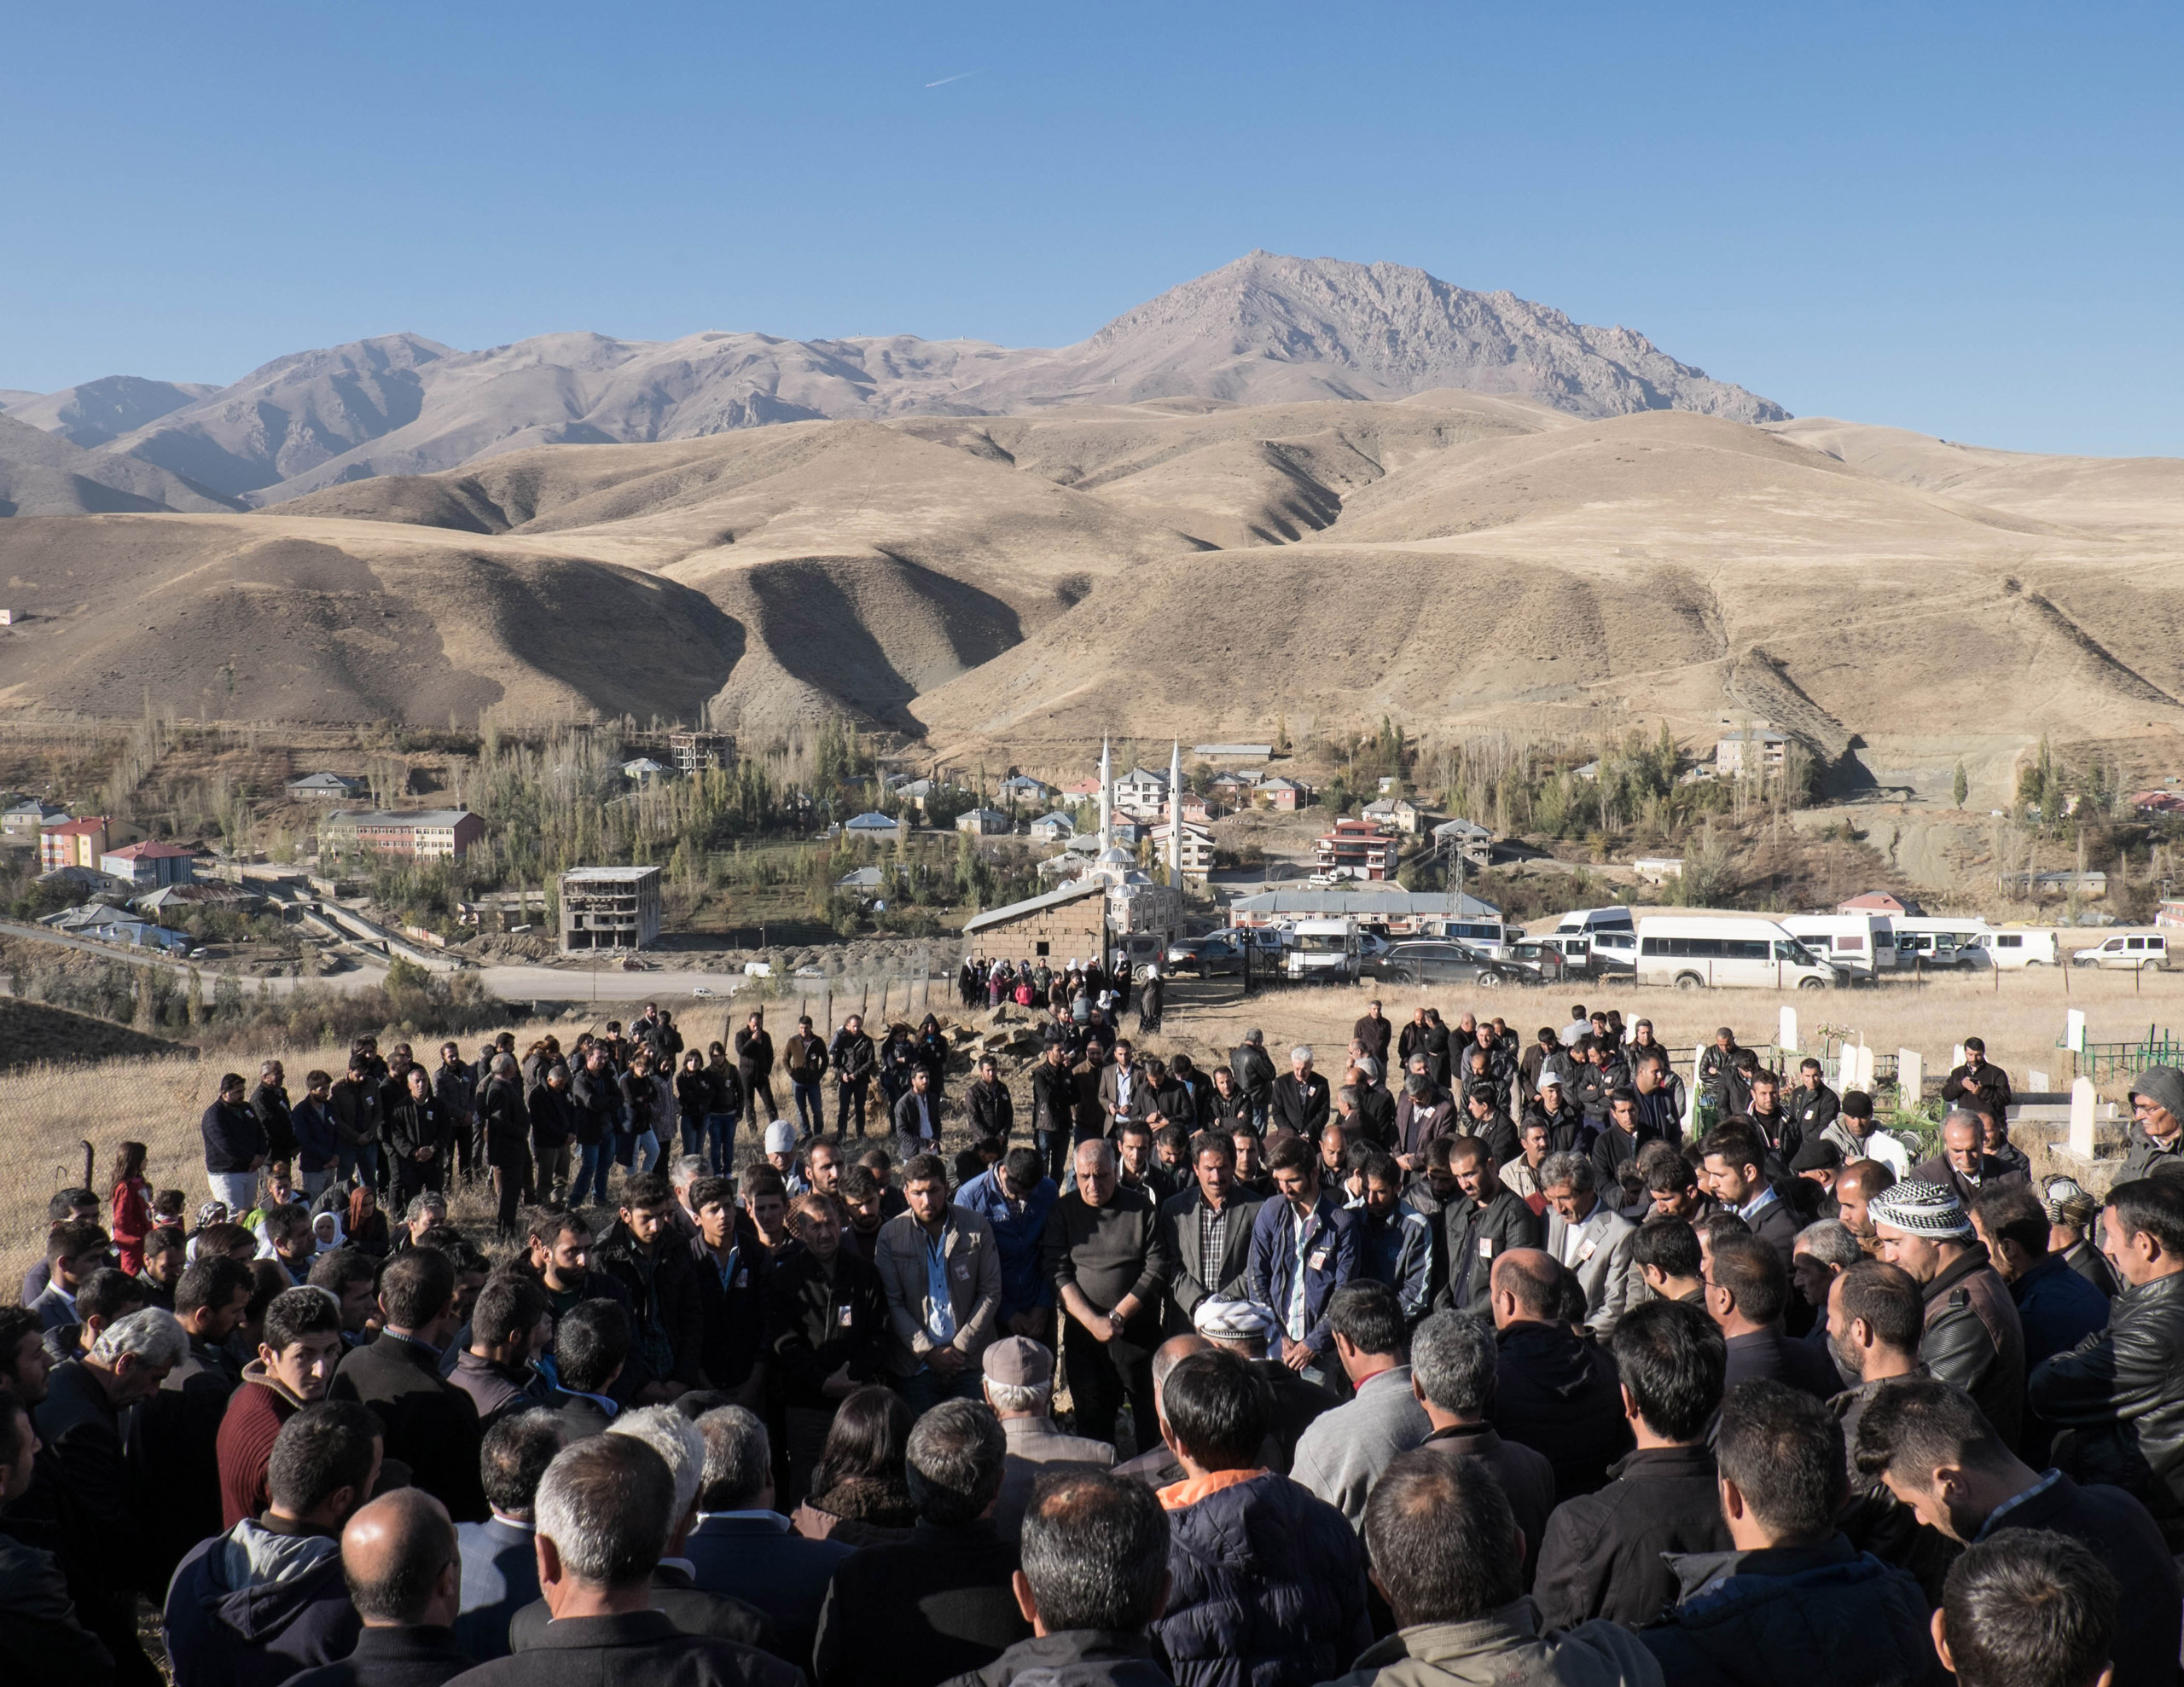 The burial of Inan Tarsun, a PKK guerrilla who died during a clash with the Turkish army on the Qandil mountains. Relatives and friends commemorate his death at the PKK grave yard in Esendere, a small town on the border with Iran in the Hakkari province of Turkey, on Nov. 4, 2015. Since July, the region has seen a surge in violence with daily clashes between the Turkish army and the militants from the outlawed Kurdistan Workers Party (PKK). The escalation has shattered a two-year ceasefire that had raised hopes of an end to three decades of fighting, in which more than 40,000 people have been killed.